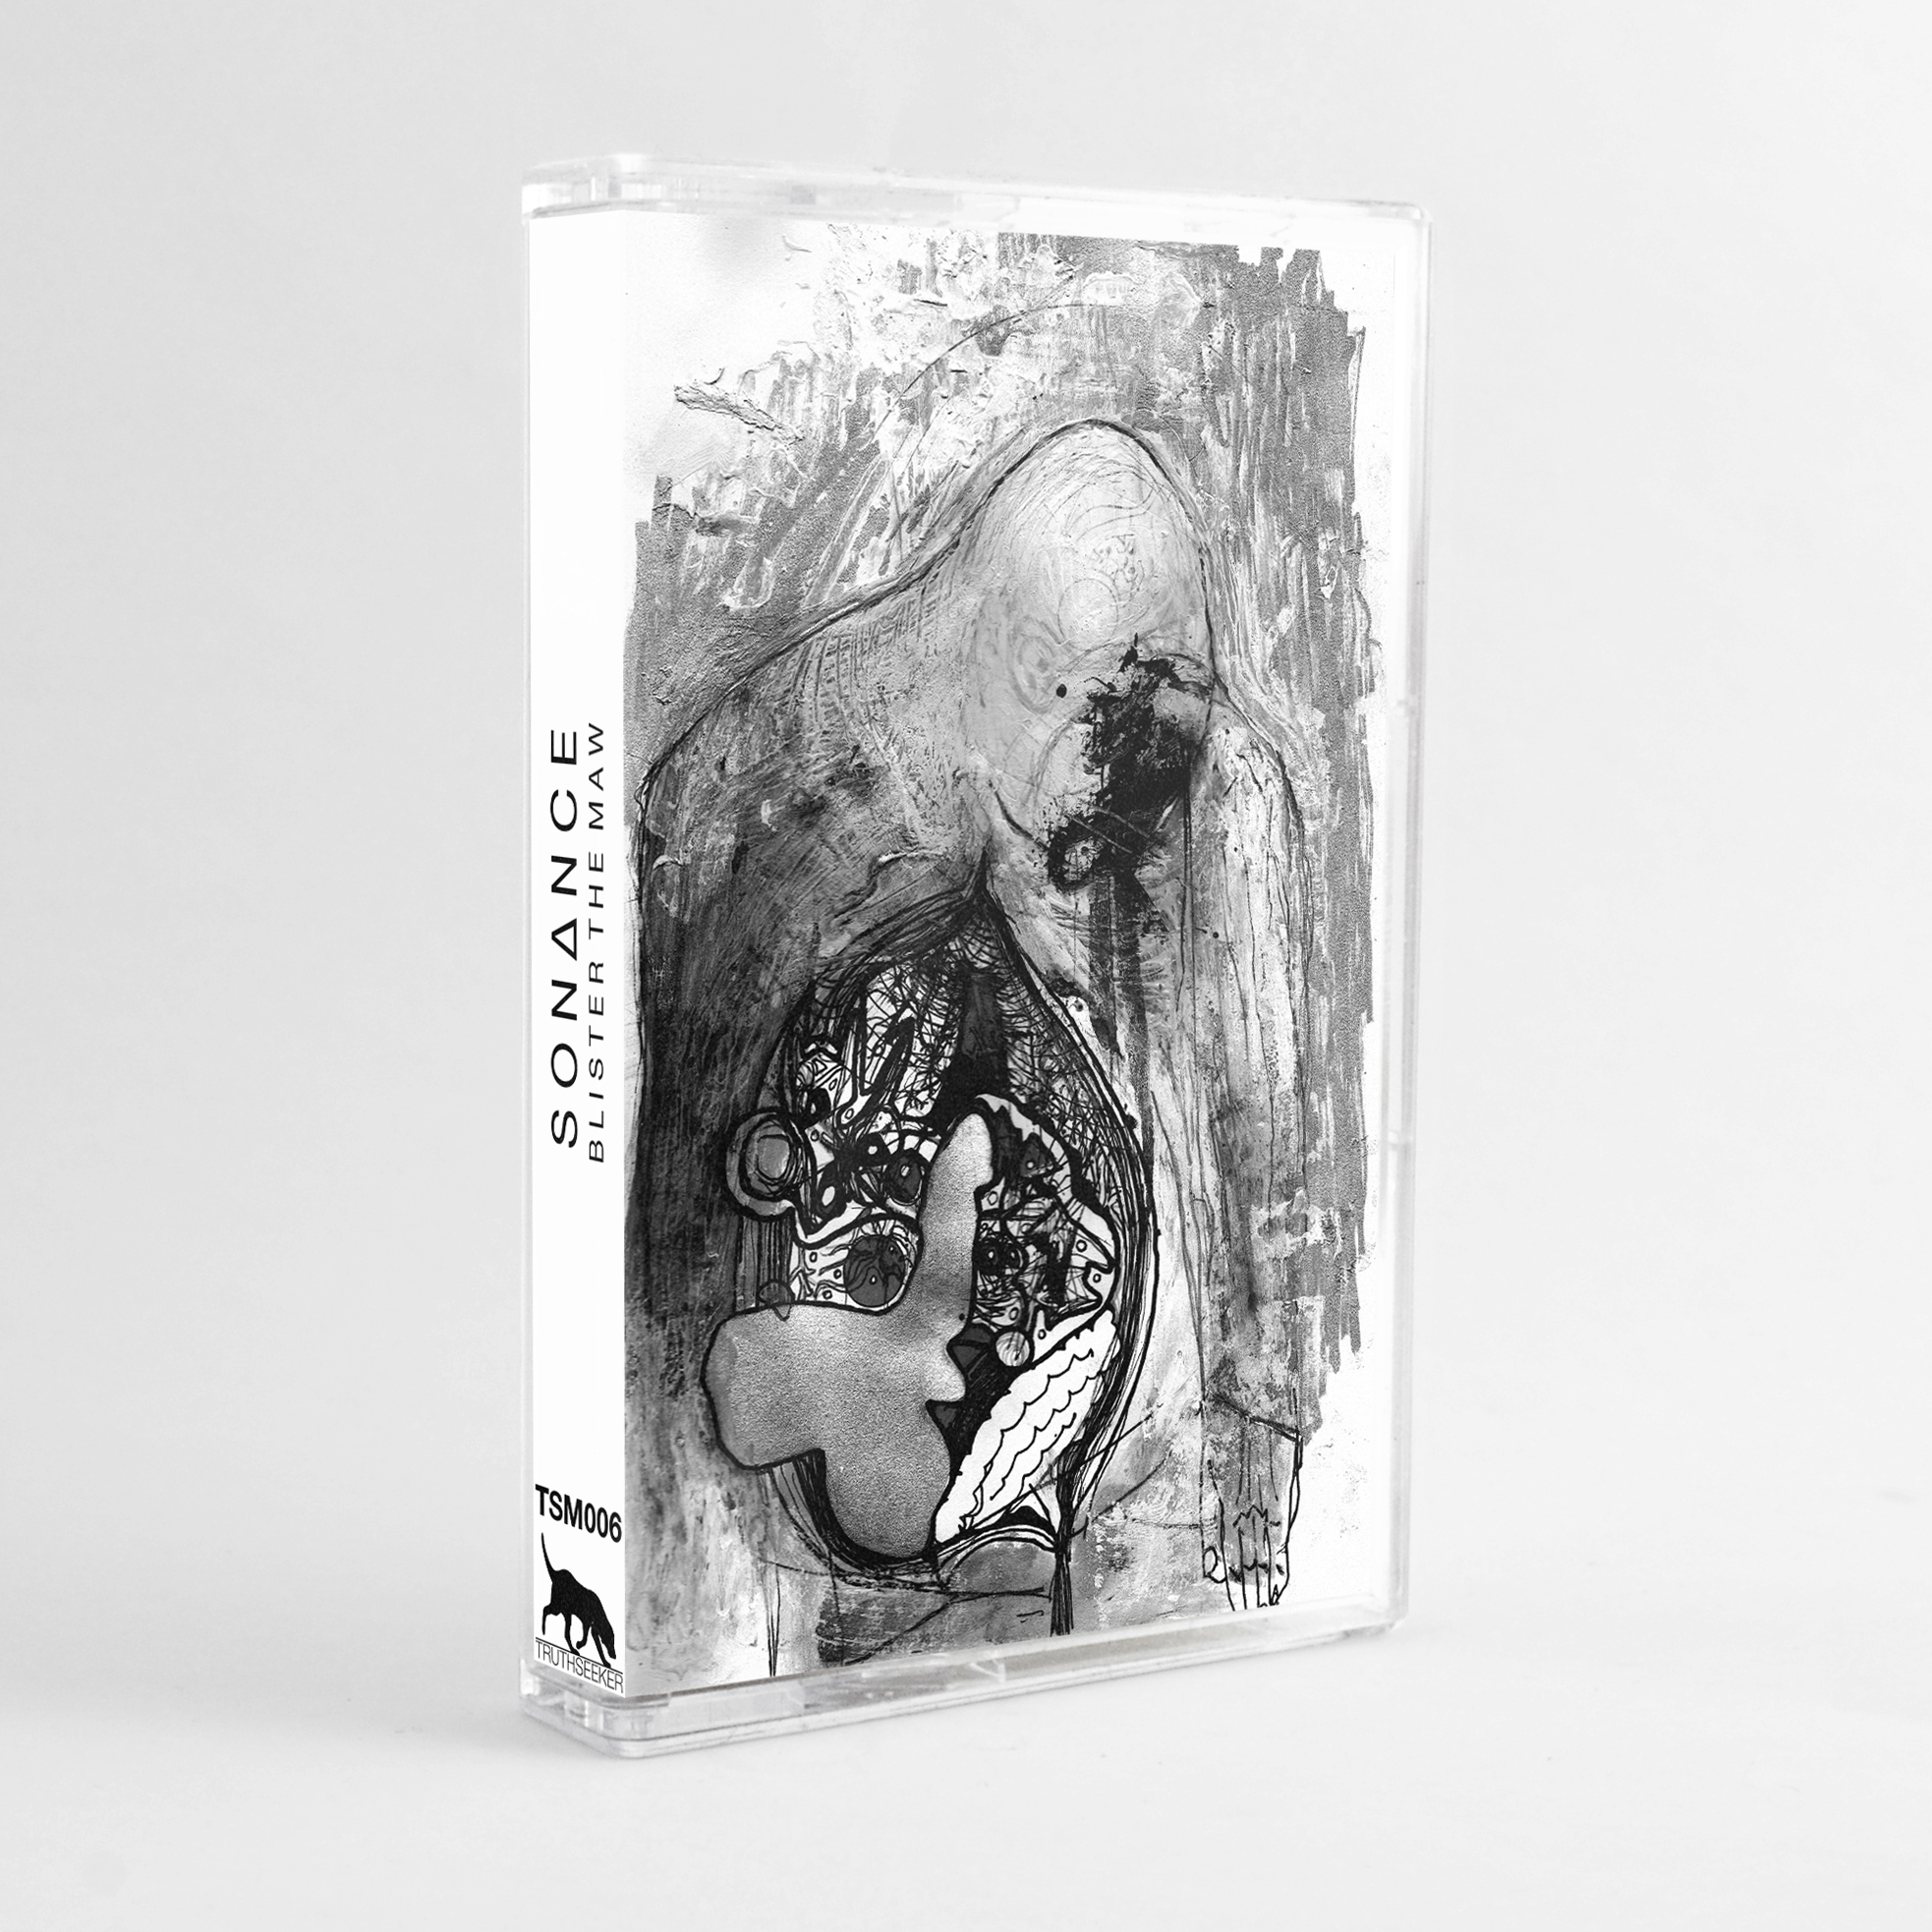 SONANCE - Blister The Maw Cassette